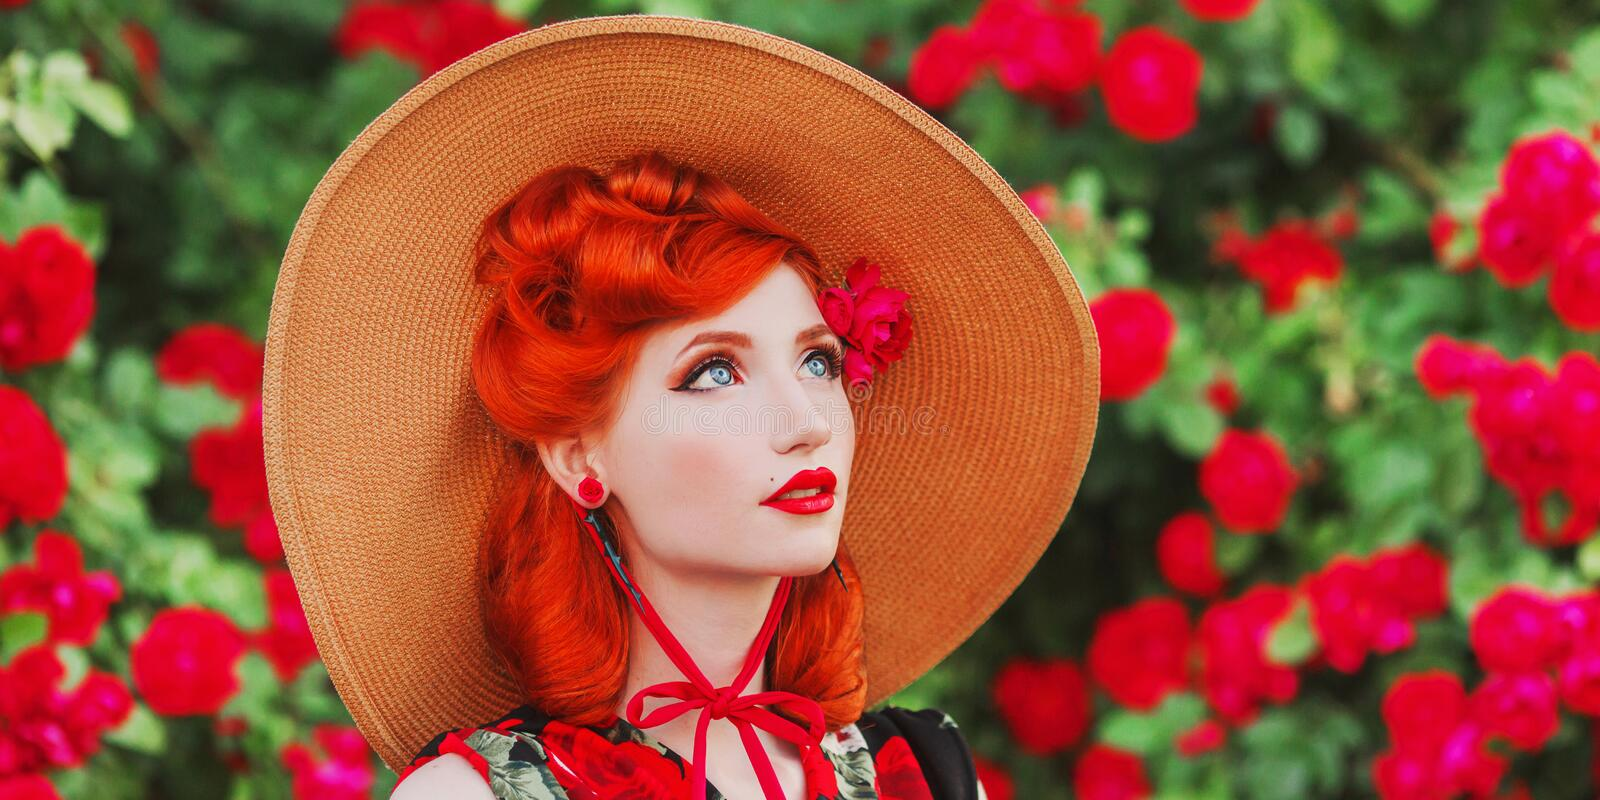 Retro girl with red lips in rose dress on beautiful flower background. Young redhead model in a hat on a background of blossom stock image